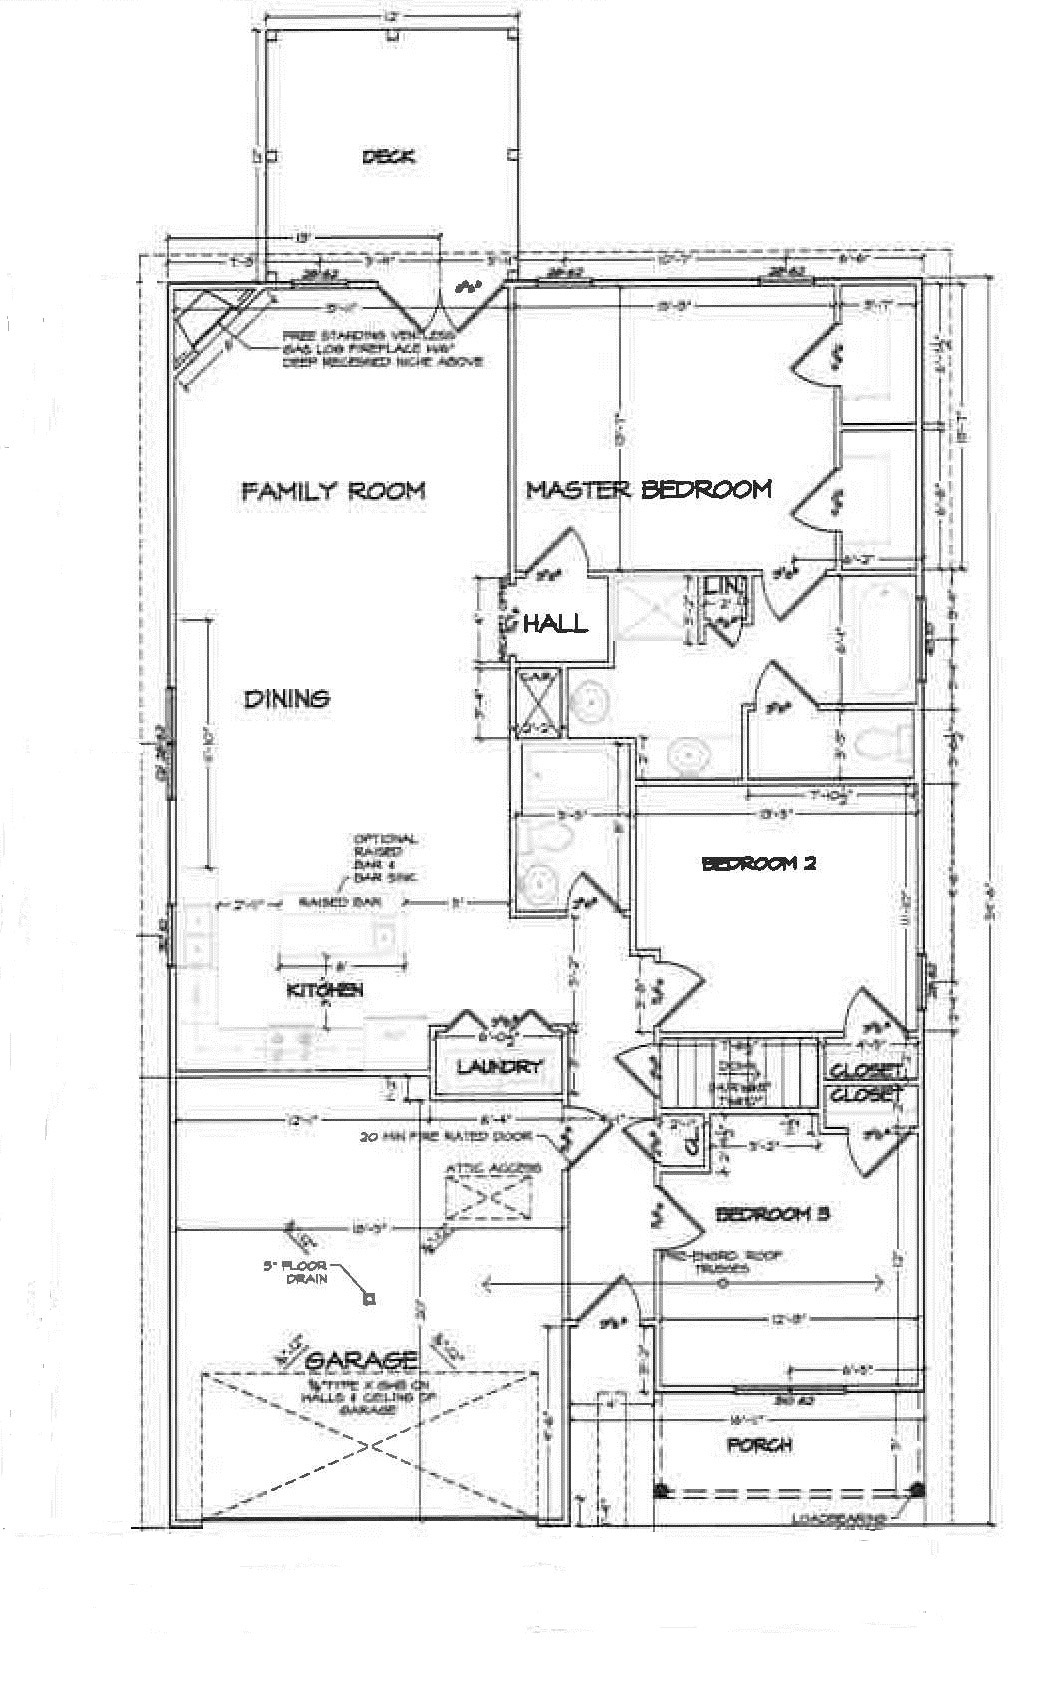 House design plans atlas homebuilders for Regency house plans